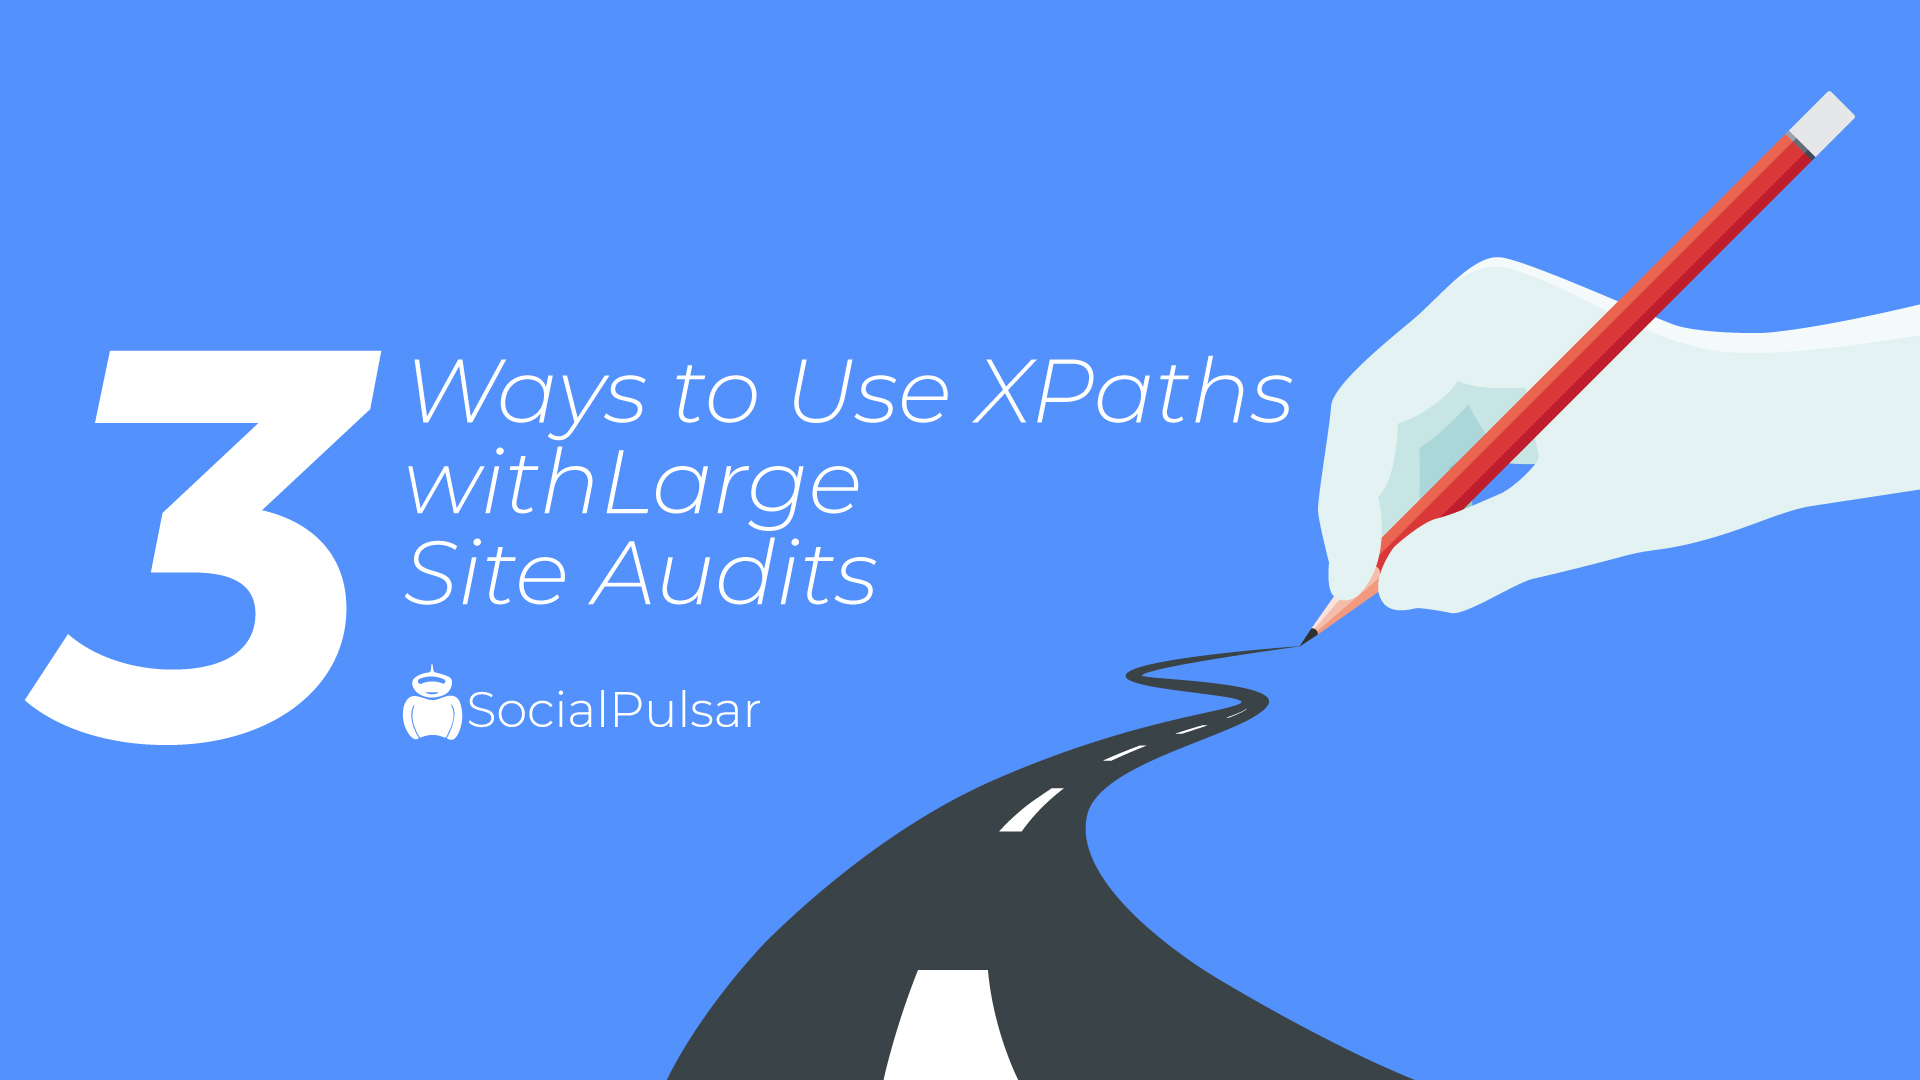 3 Ways to Use XPaths with Large Site Audits